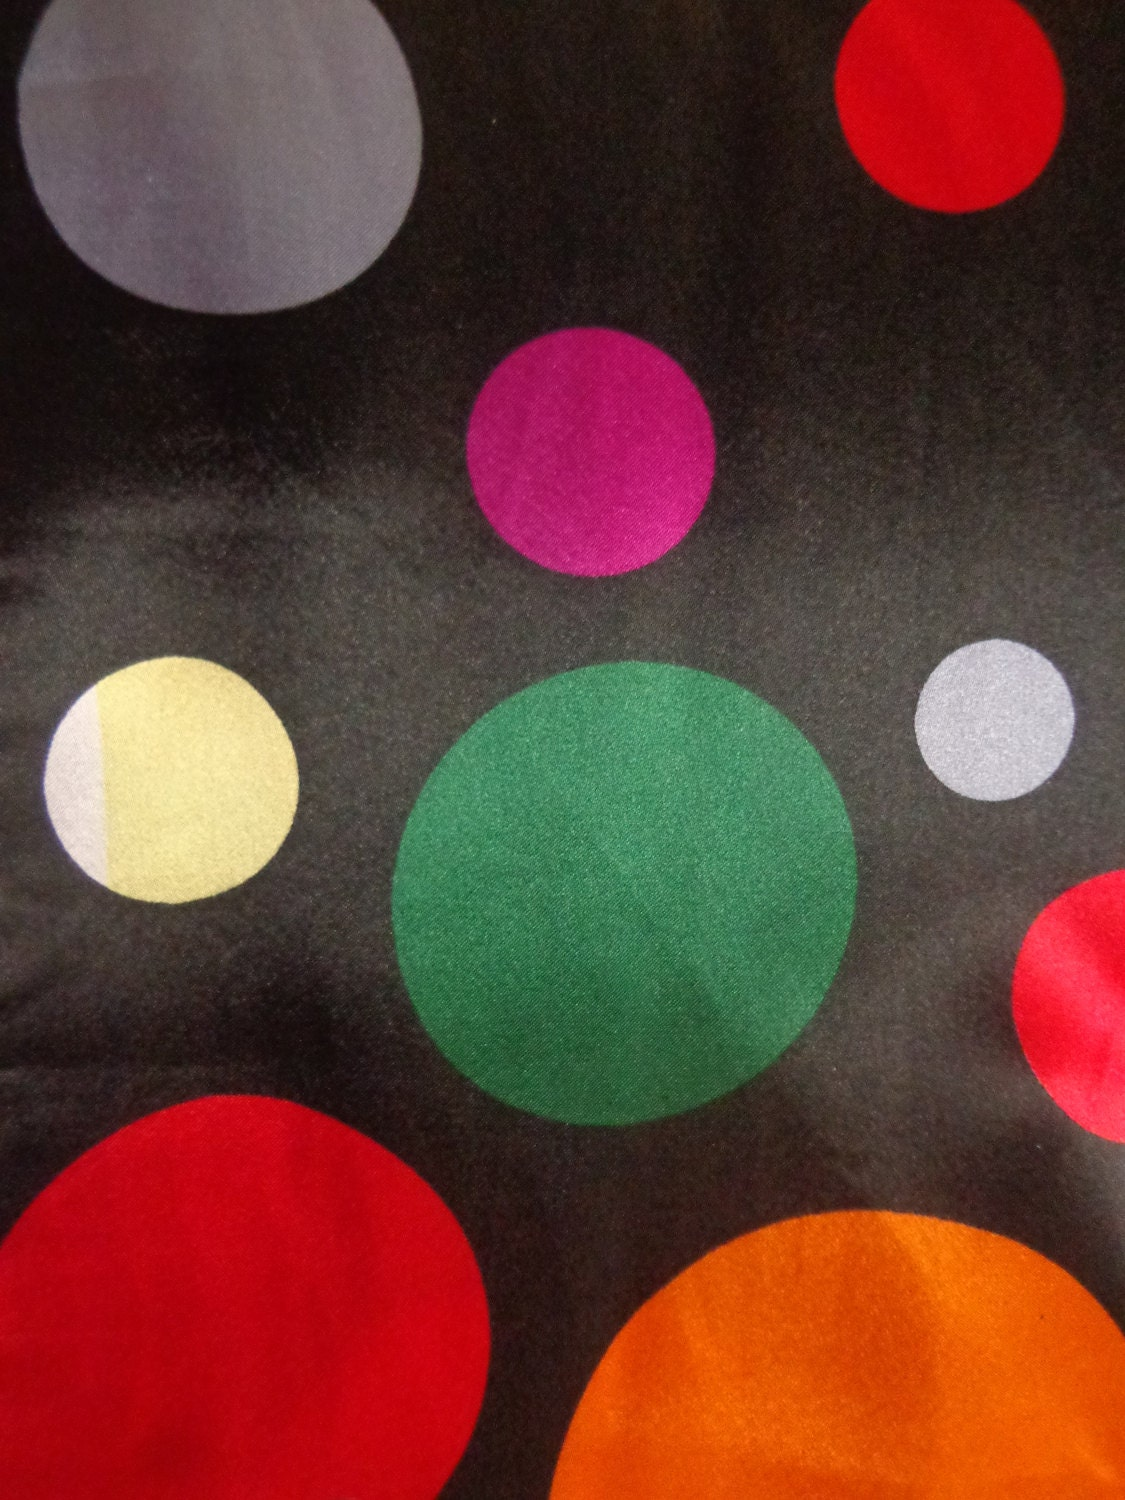 Multi Color 6pcs Honeycomb Handle Design Ombre Makeup: Multi Color Polka Dots On Black Satin Fabric From